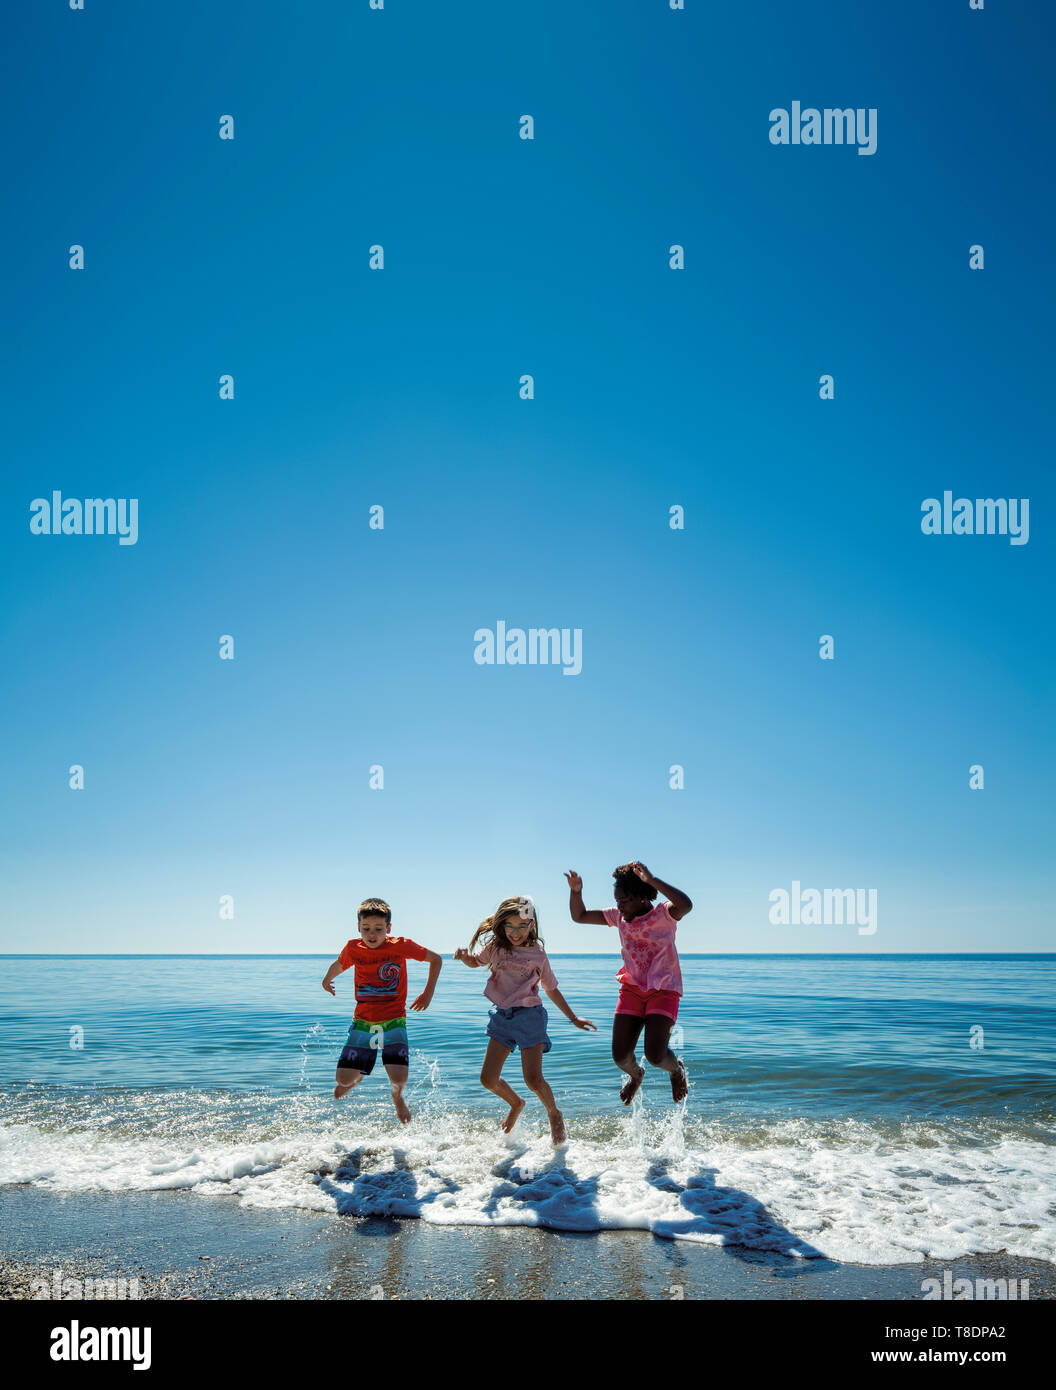 Group of children having fun on the beach. Mediterranean sea and blue sky. Costa del Sol, Marbella. Andalusia, Southern Spain. Europe Stock Photo